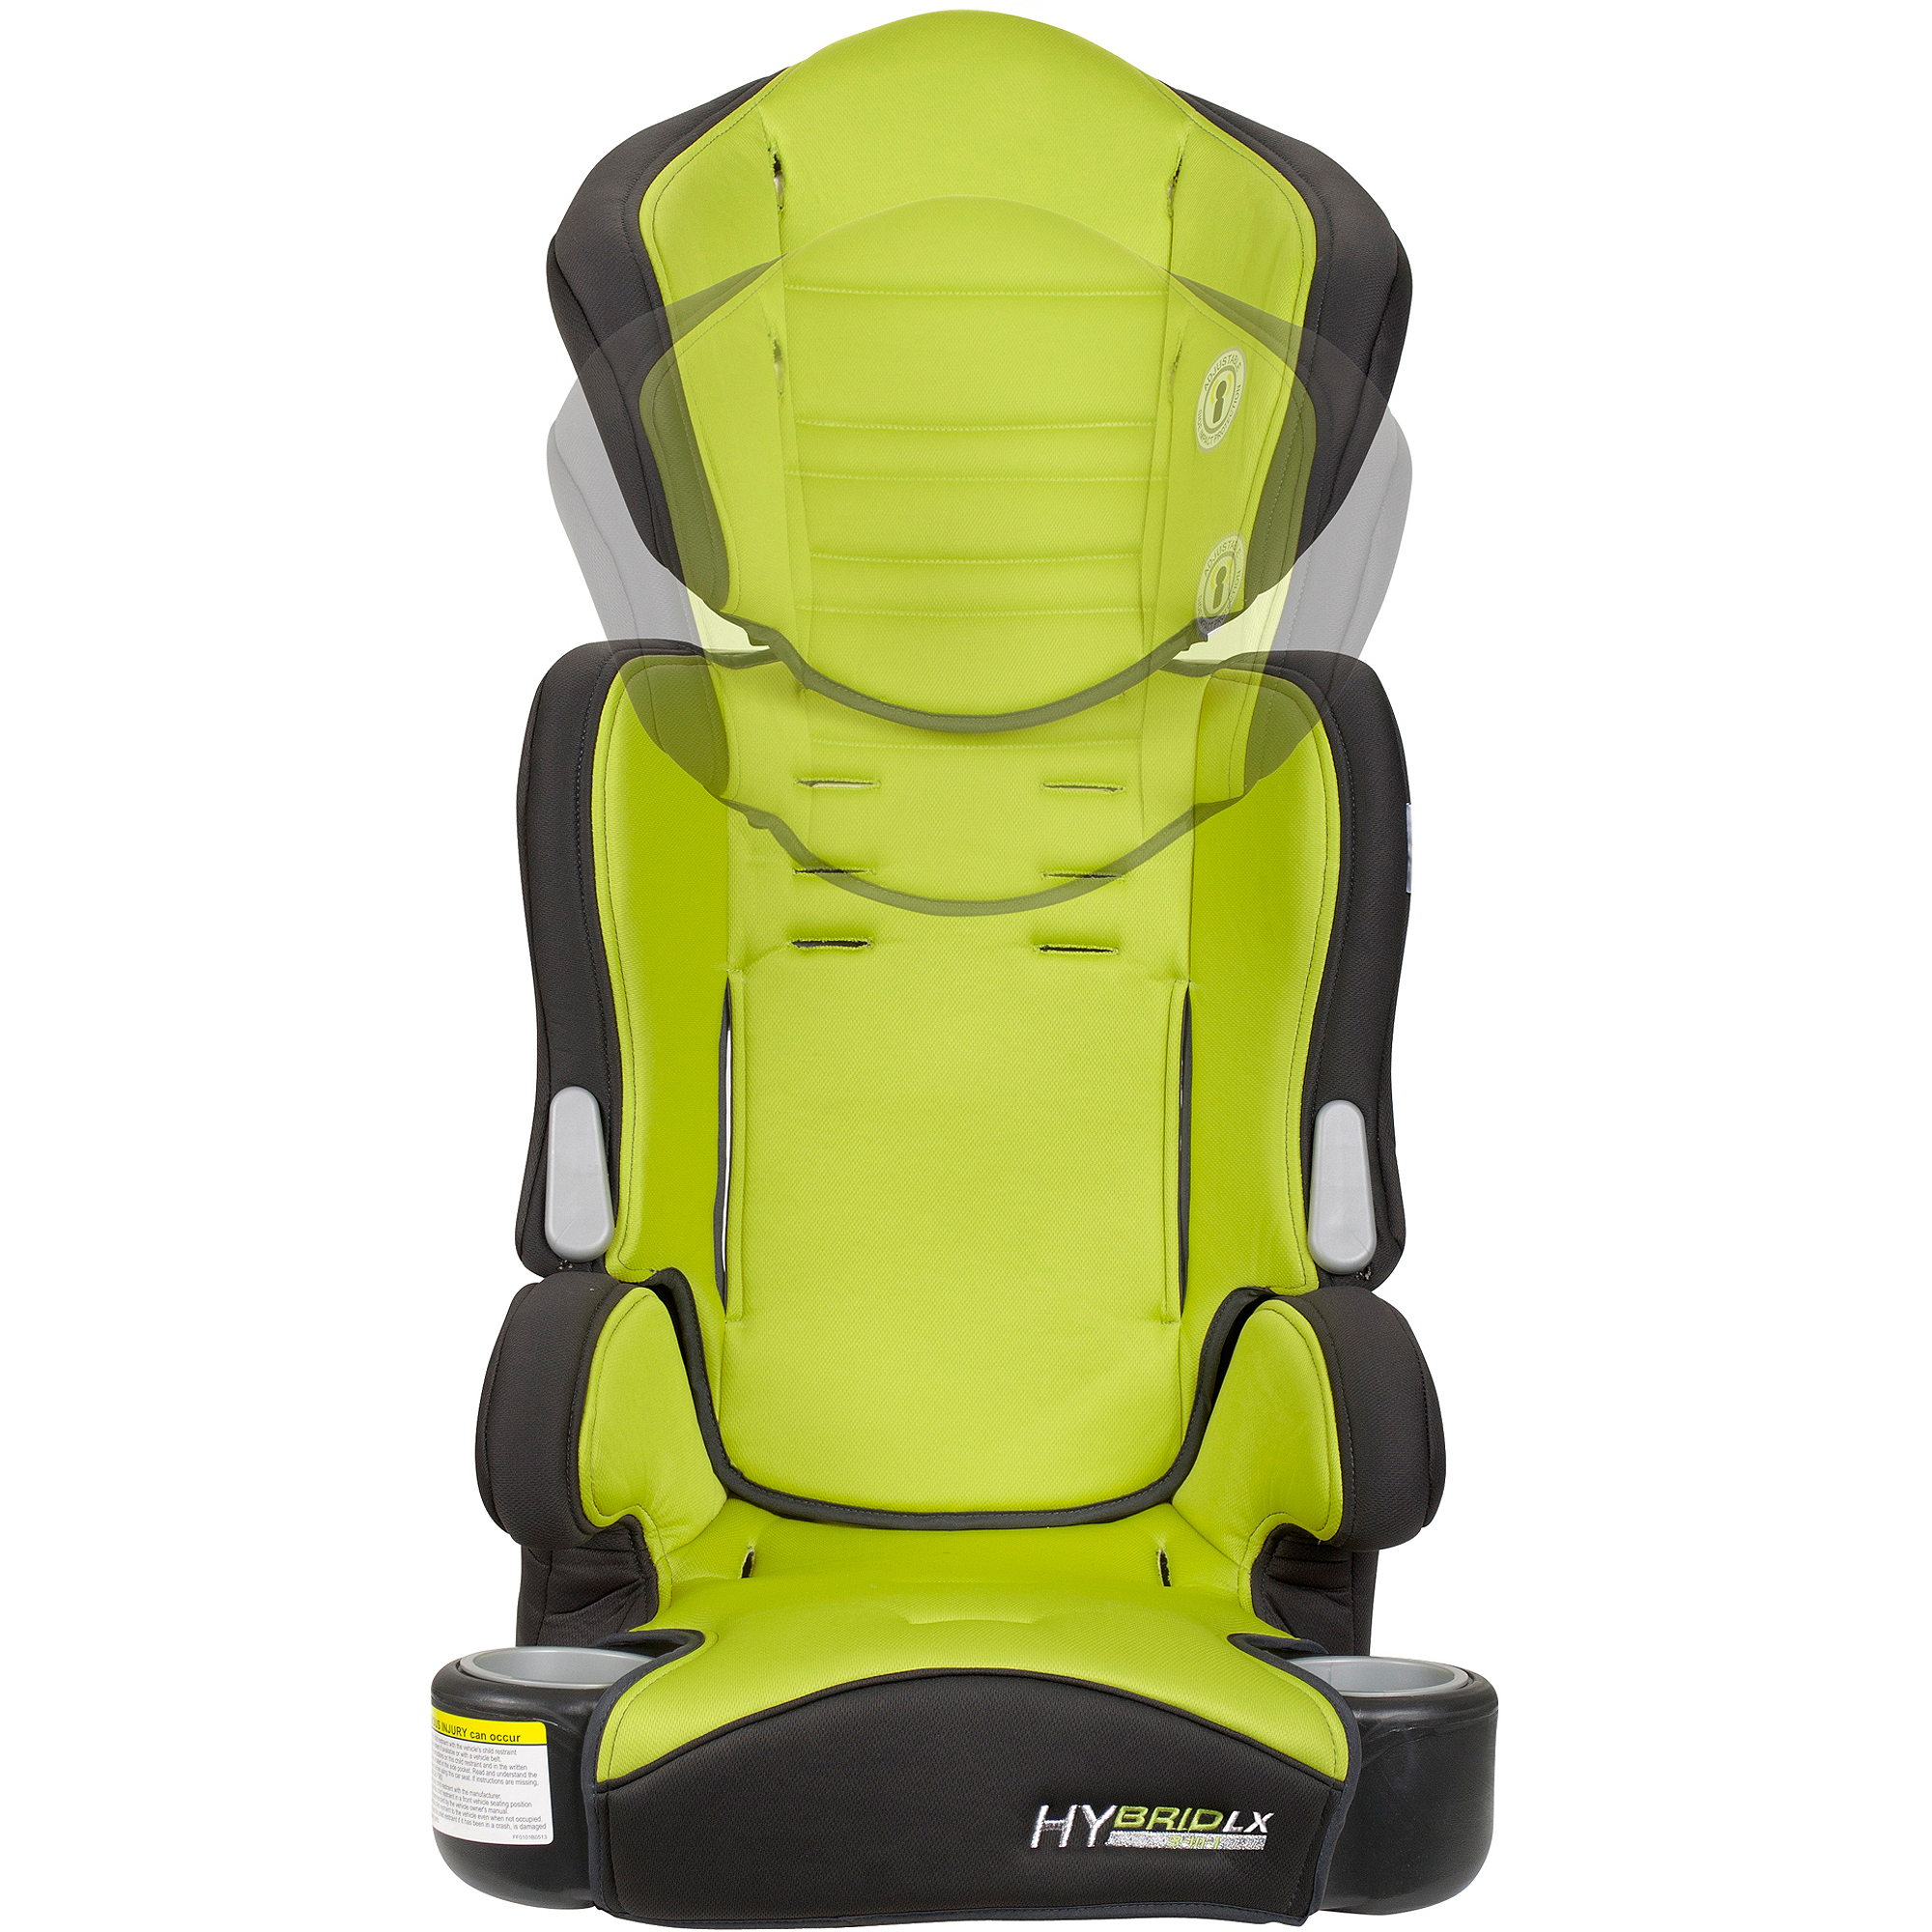 Baby Trend Hybrid LX 3 In 1 Booster Car Seat Kiwi